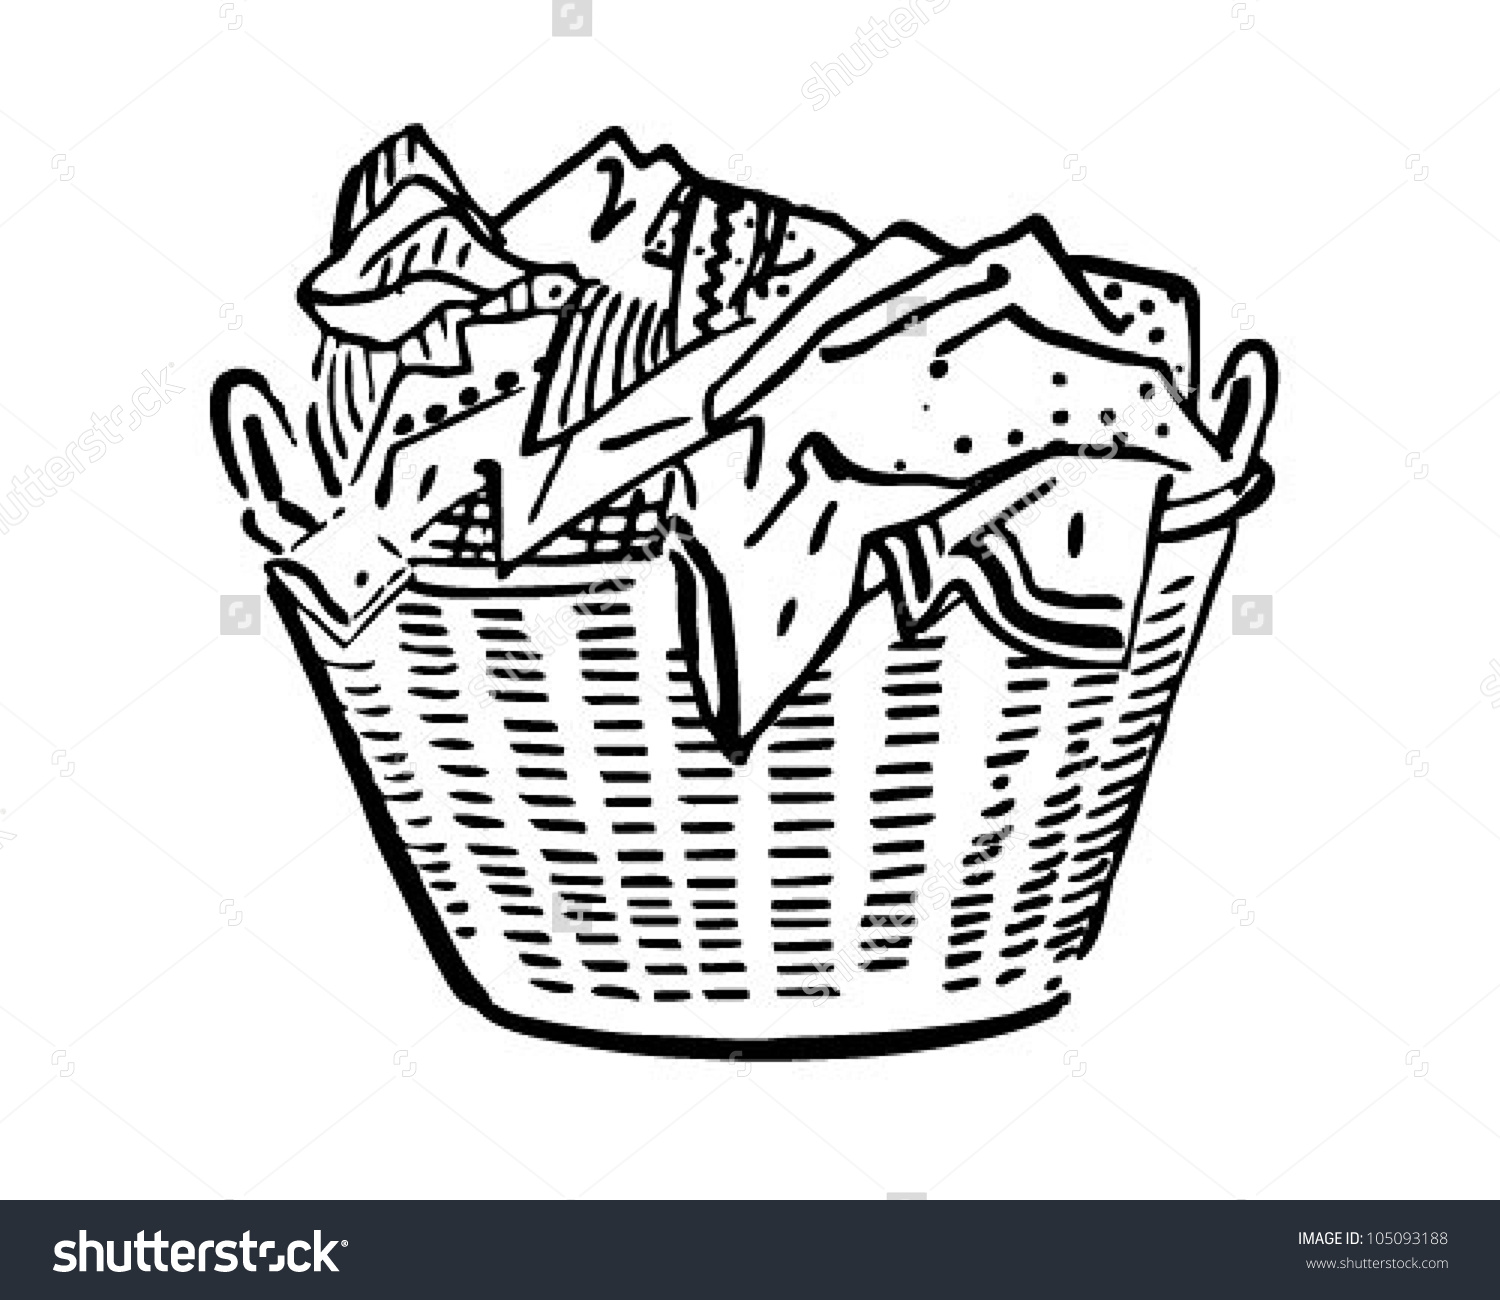 Laundry Basket Retro Clipart Illustration Stock Vector 105093188.